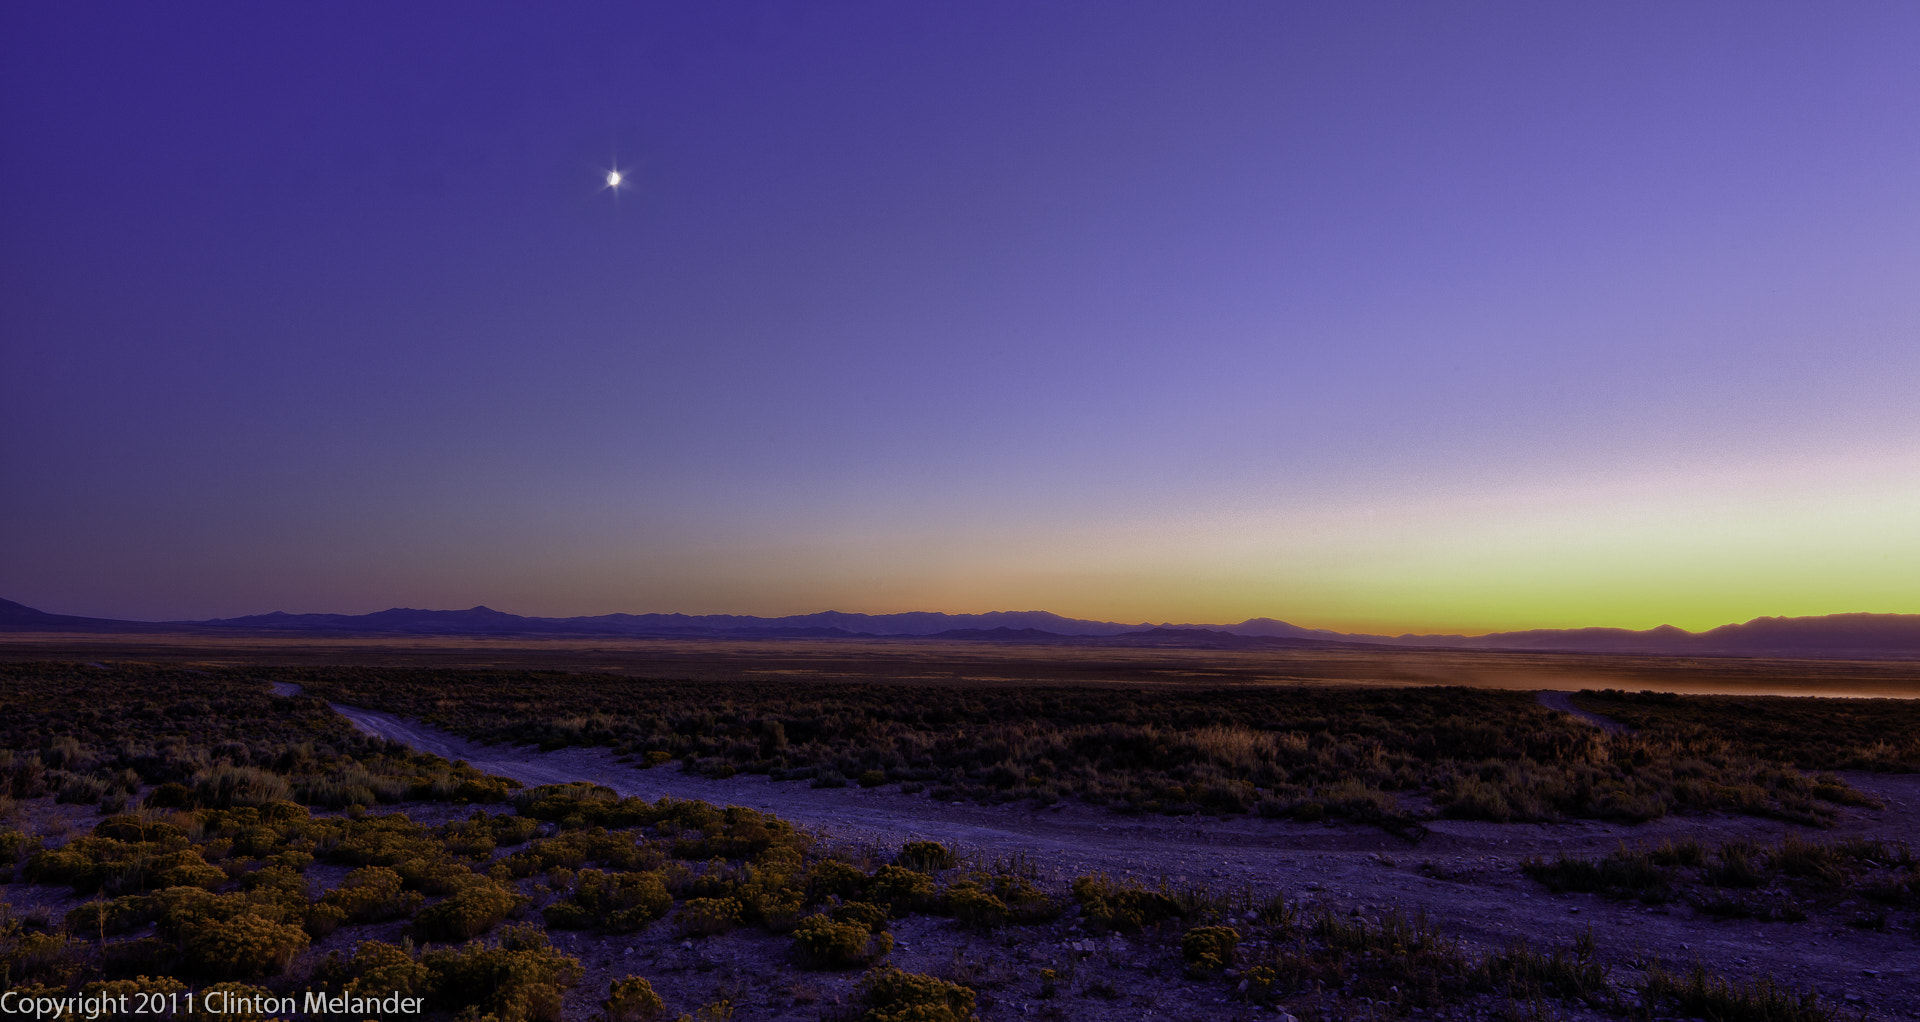 Photograph Utah West Desert Moon & Sunset panoramic by Clinton Melander on 500px